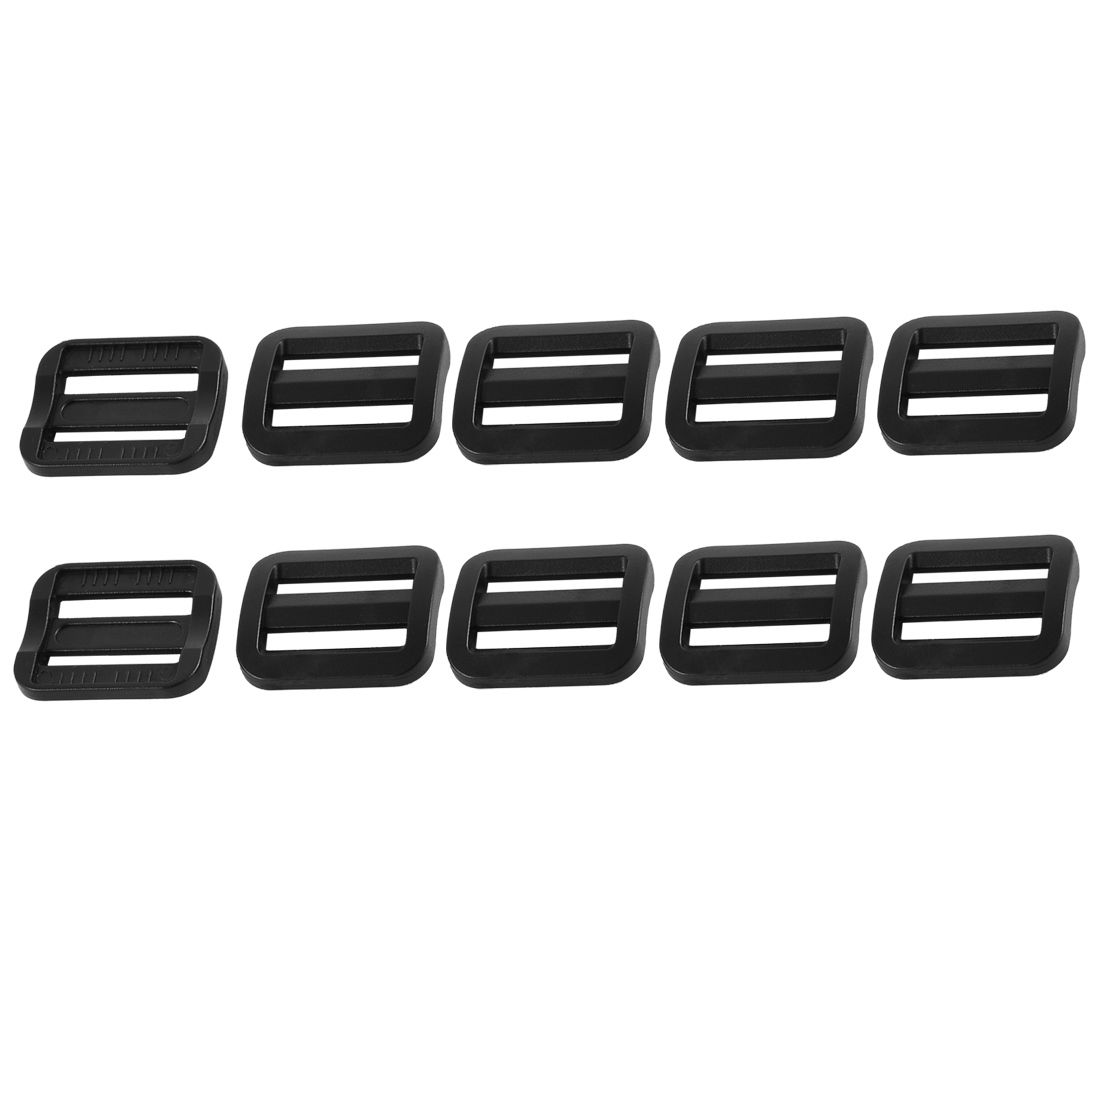 Bag Webbing Strap Belt Plastic Rectangle Connecting Tri Glide Buckles Black 10pcs